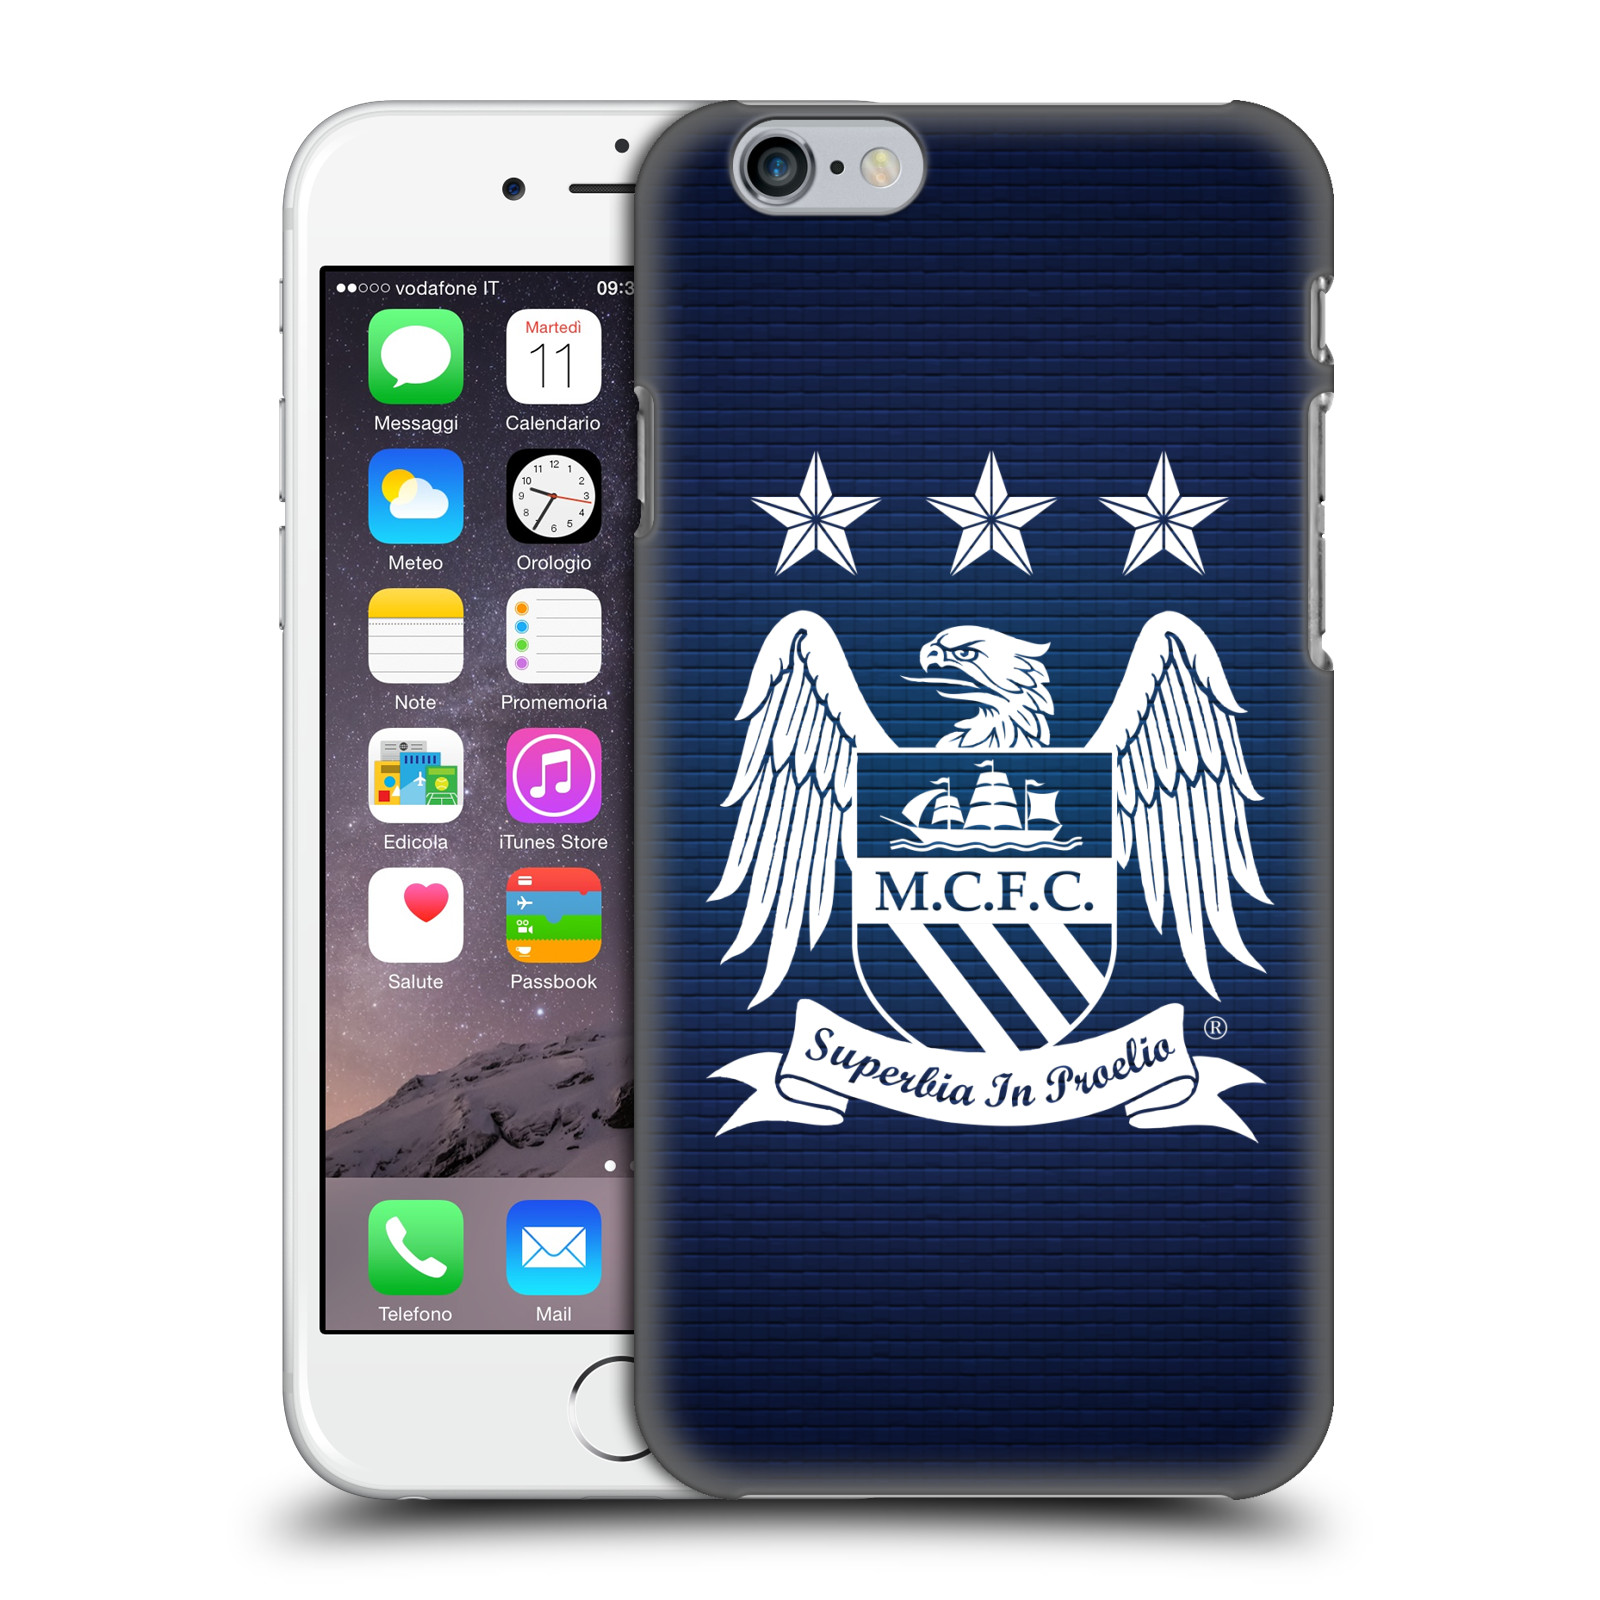 Manchester City FC MCFC Crest Pixels-Obsidian Null Cube